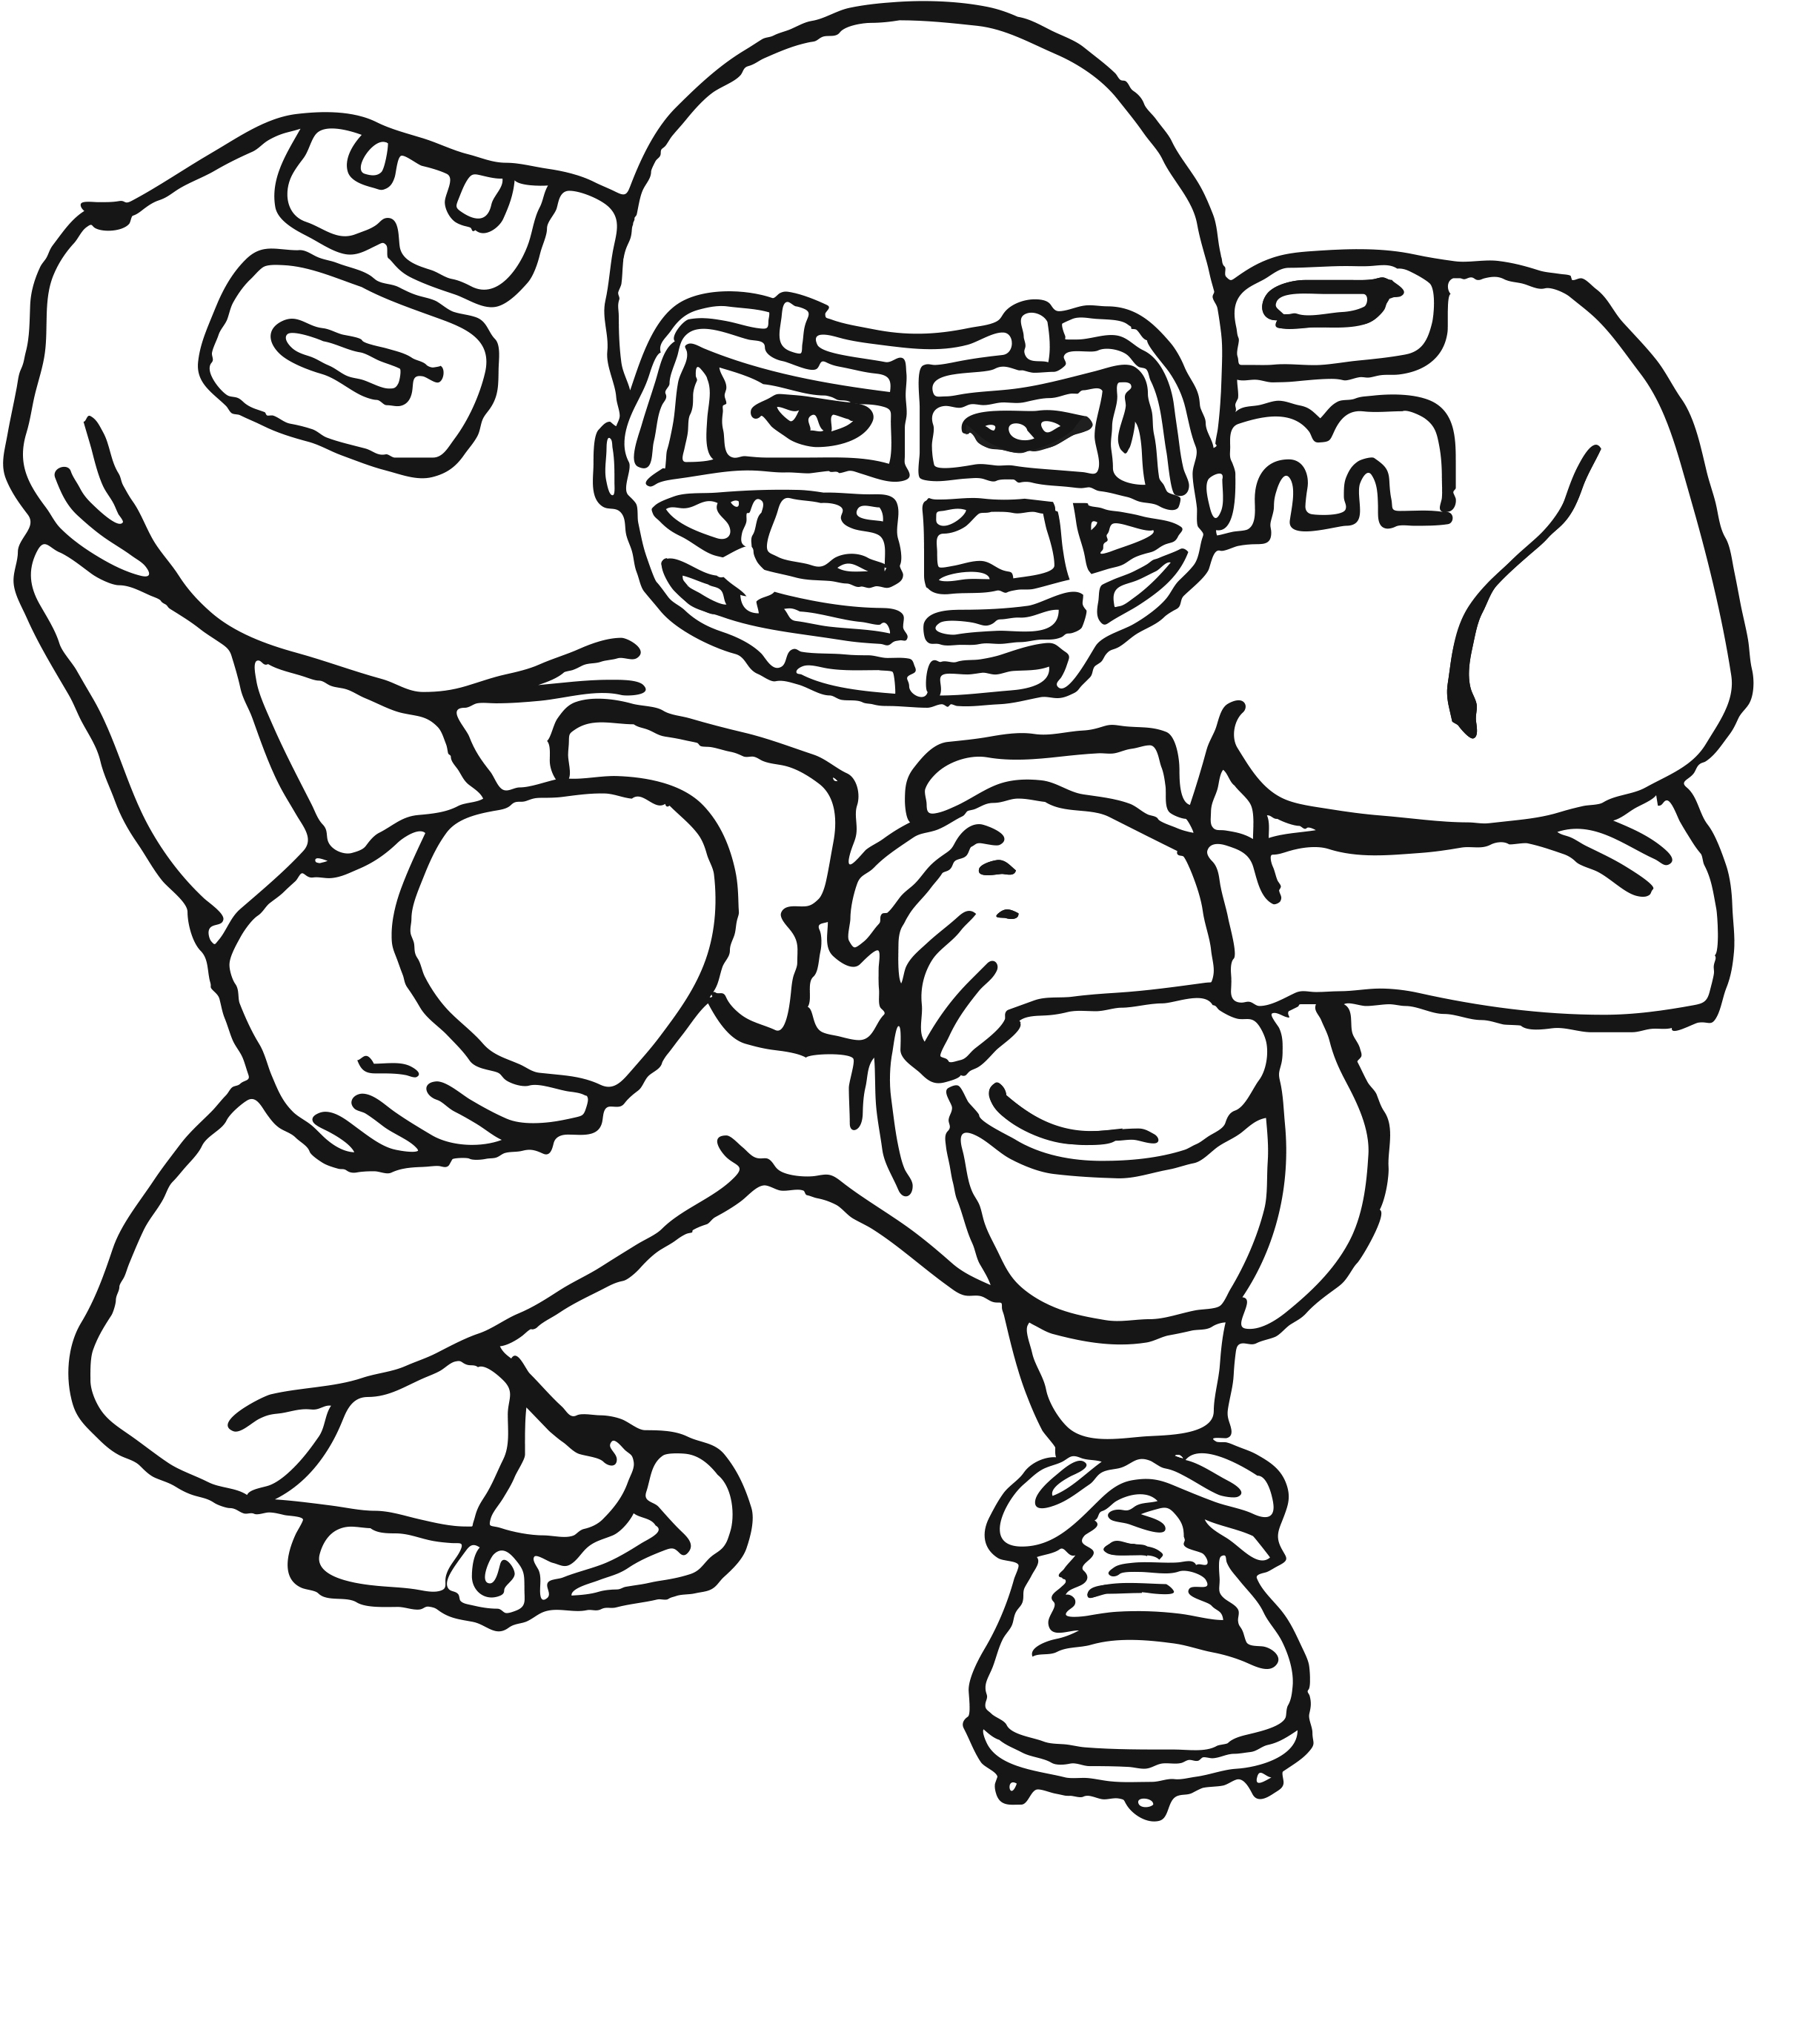 football coloring pages printable - free printable football coloring pages kids